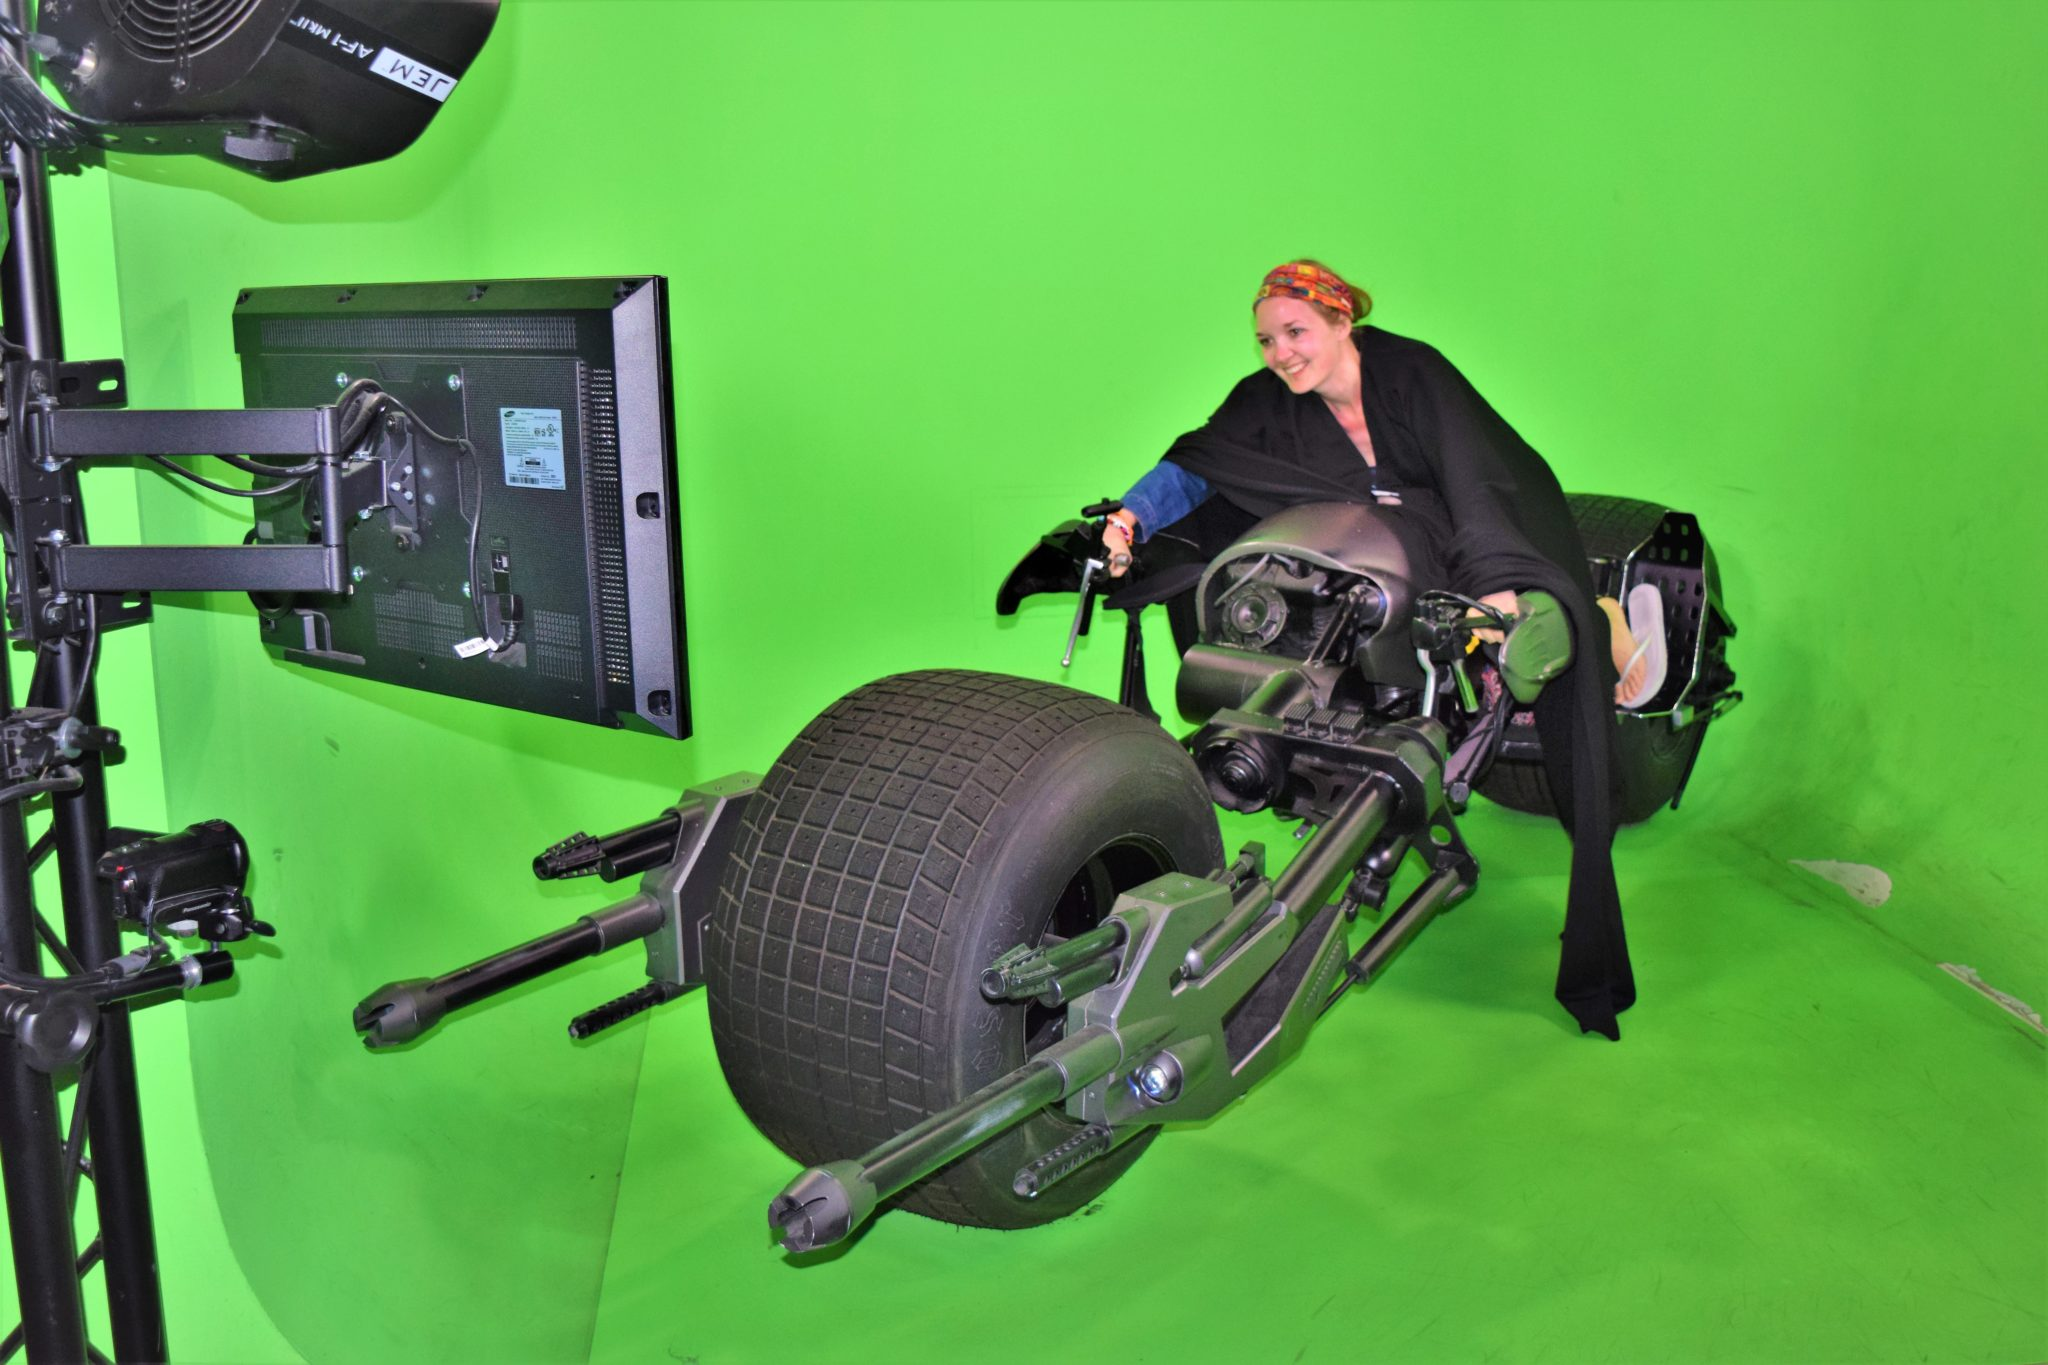 Warner brothers Studios batmobile simulator, things to do in los angeles